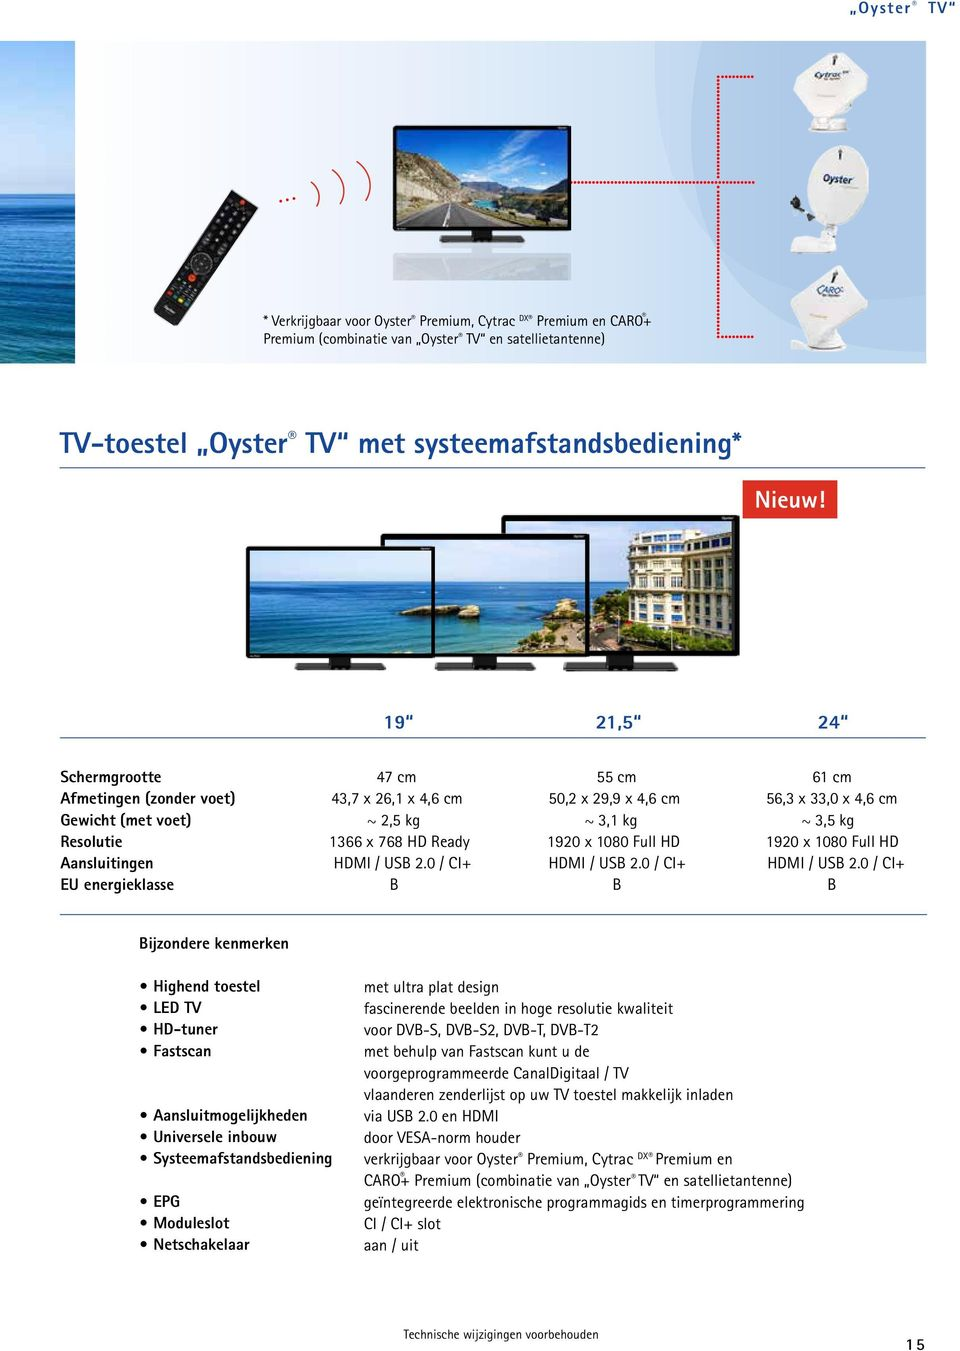 HD Ready 1920 x 1080 Full HD 1920 x 1080 Full HD Aansluitingen HDMI / USB 2.0 / CI+ HDMI / USB 2.